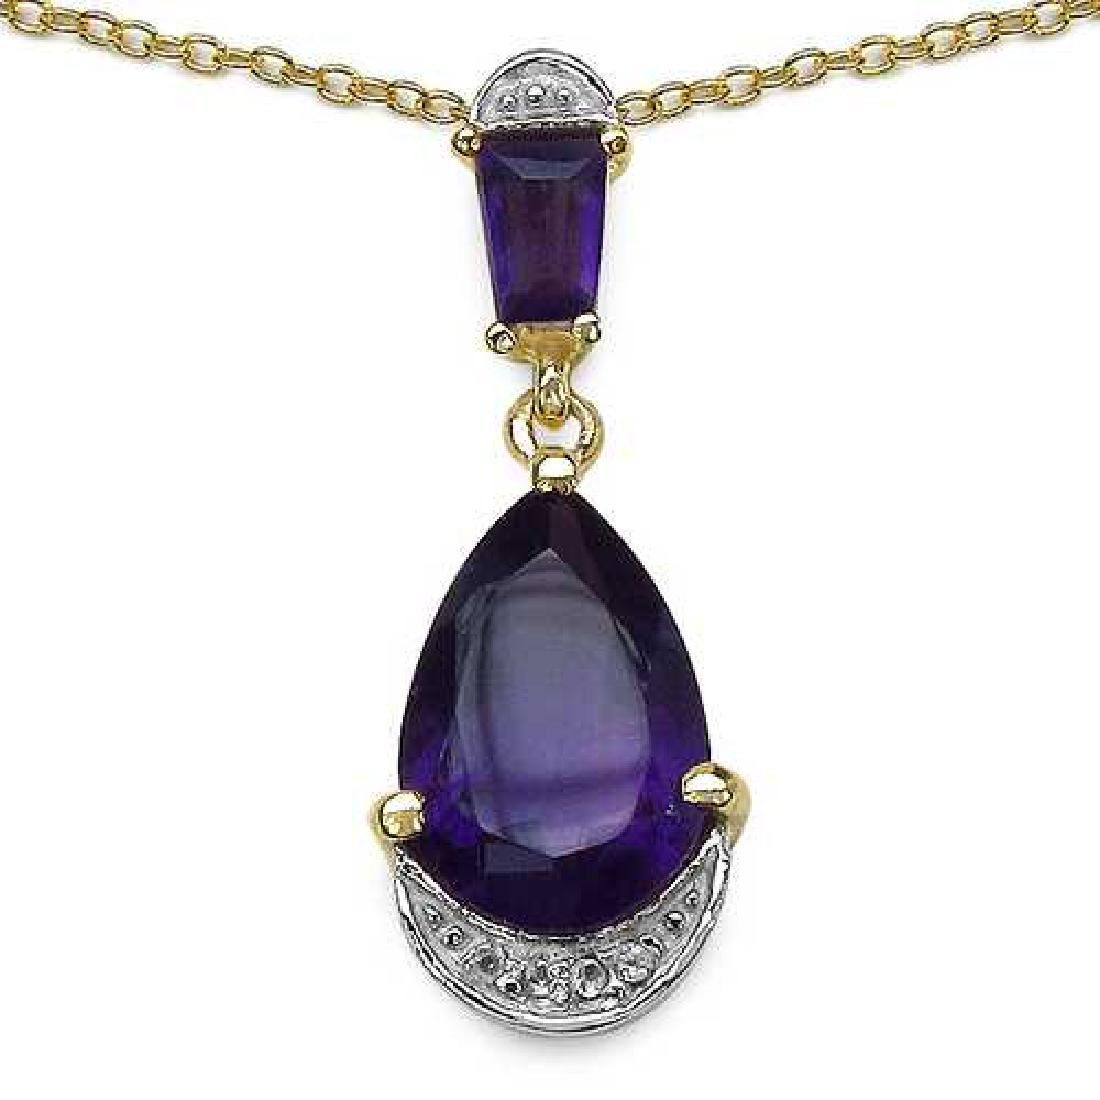 14K Yellow Gold Plated 2.82 Carat Genuine Amethyst & Wh